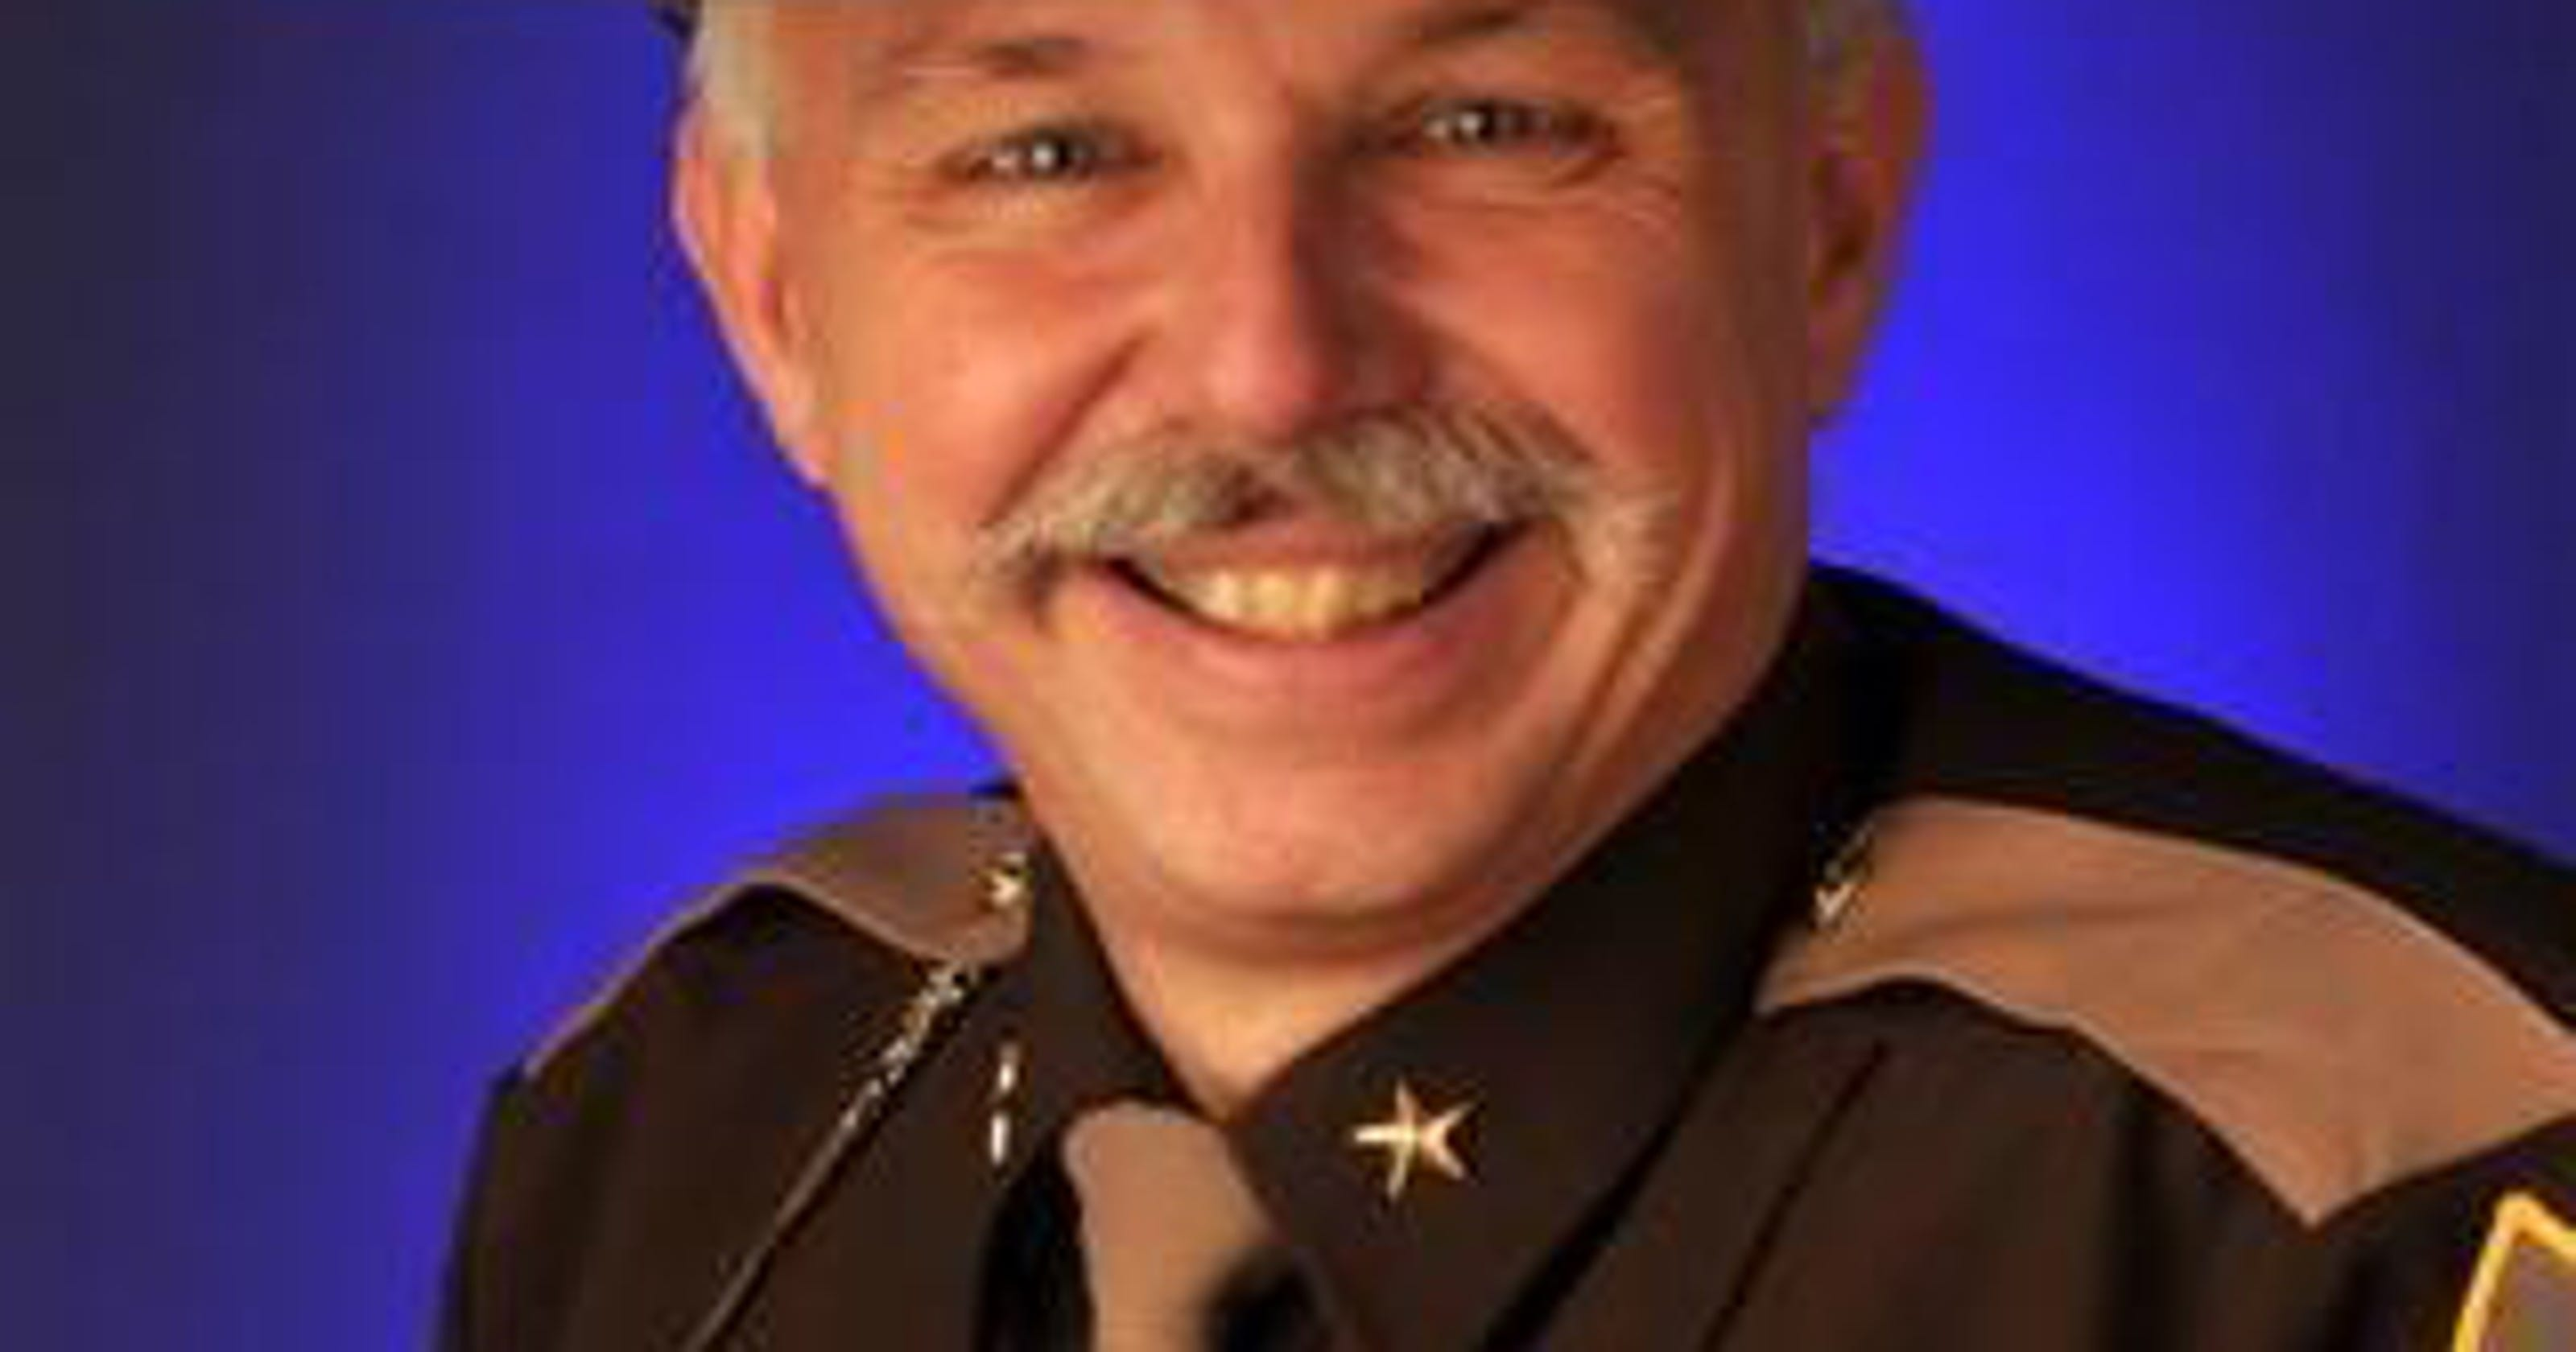 Boone County sheriff resigns amid prostitution investigation